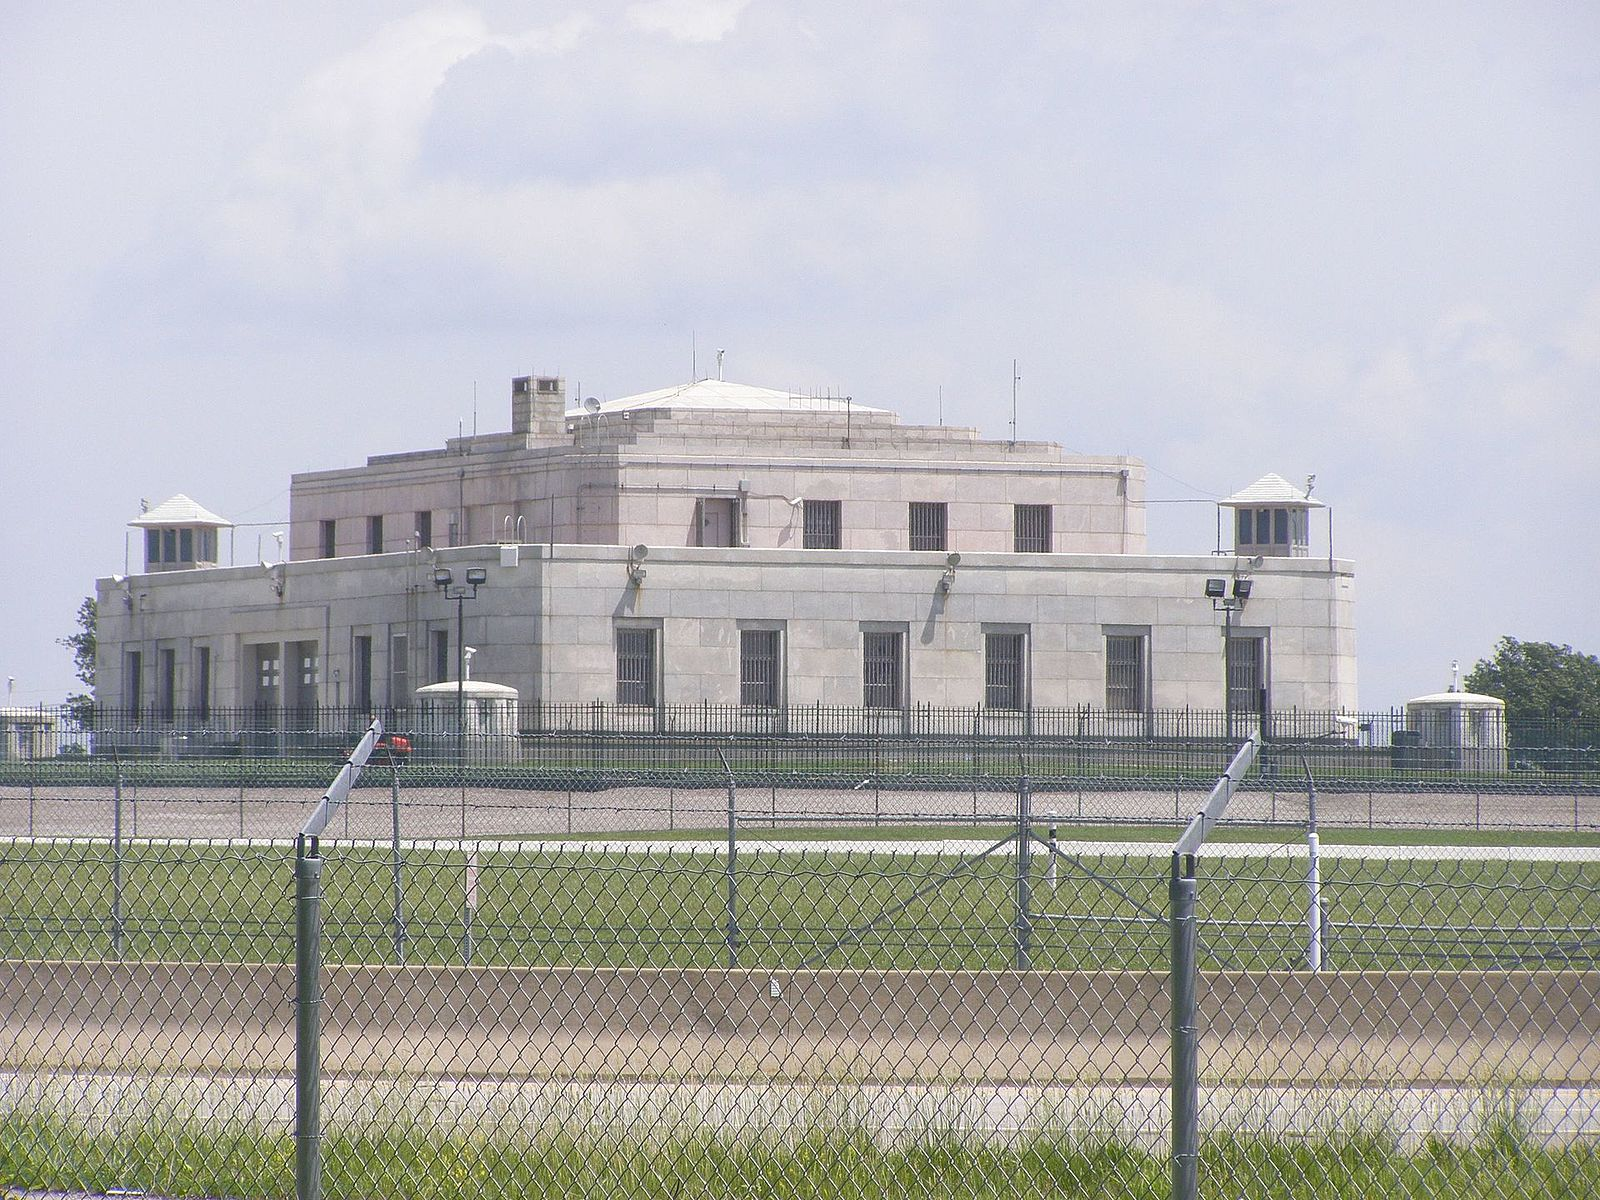 Security Fencing at Fort Knox